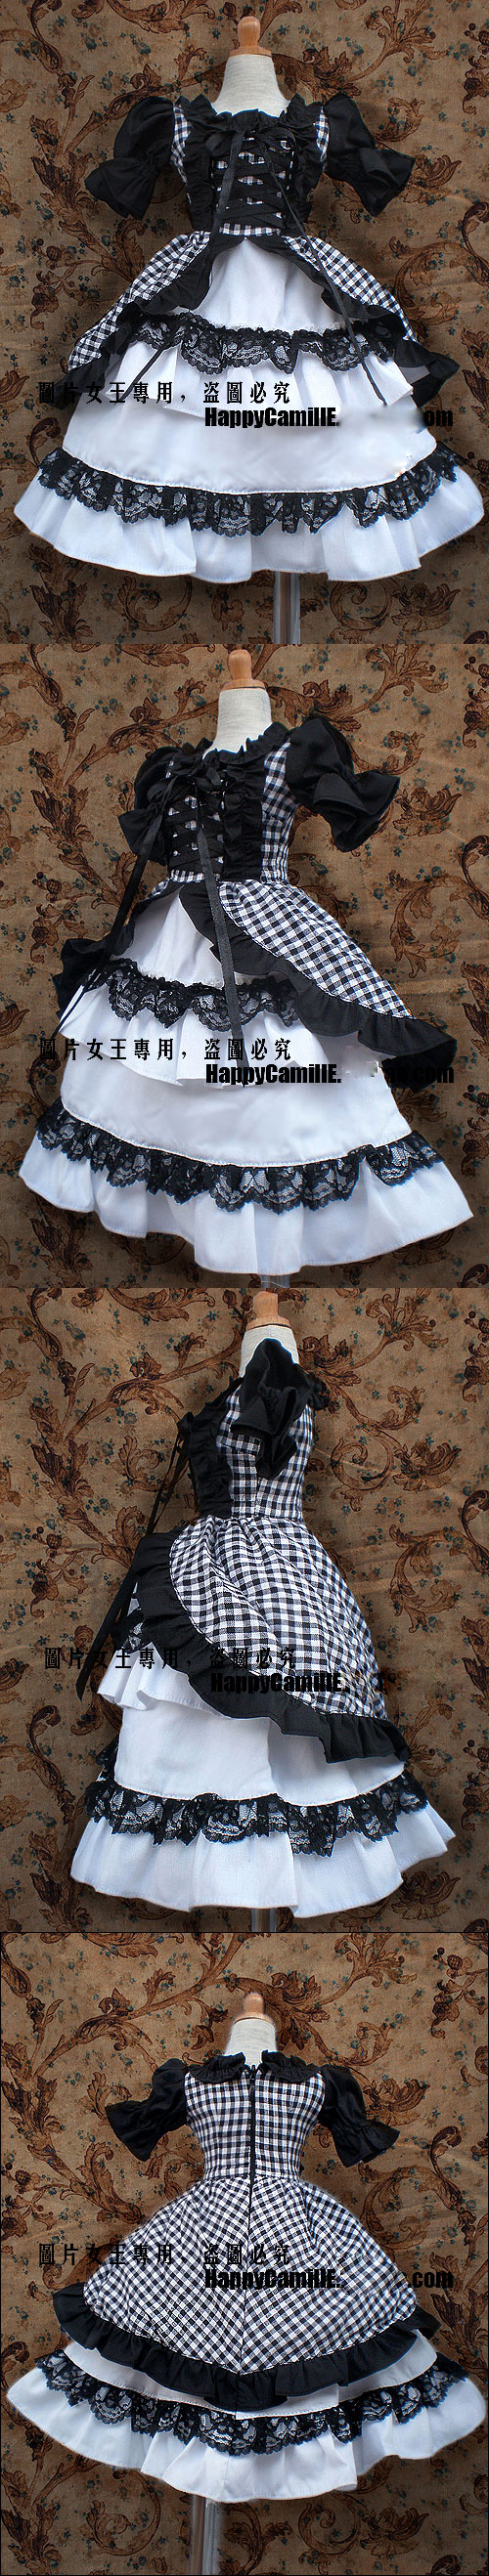 BJD Clothes Black&White Grid Skirt Girl for SD/MSD Ball-jointed Doll